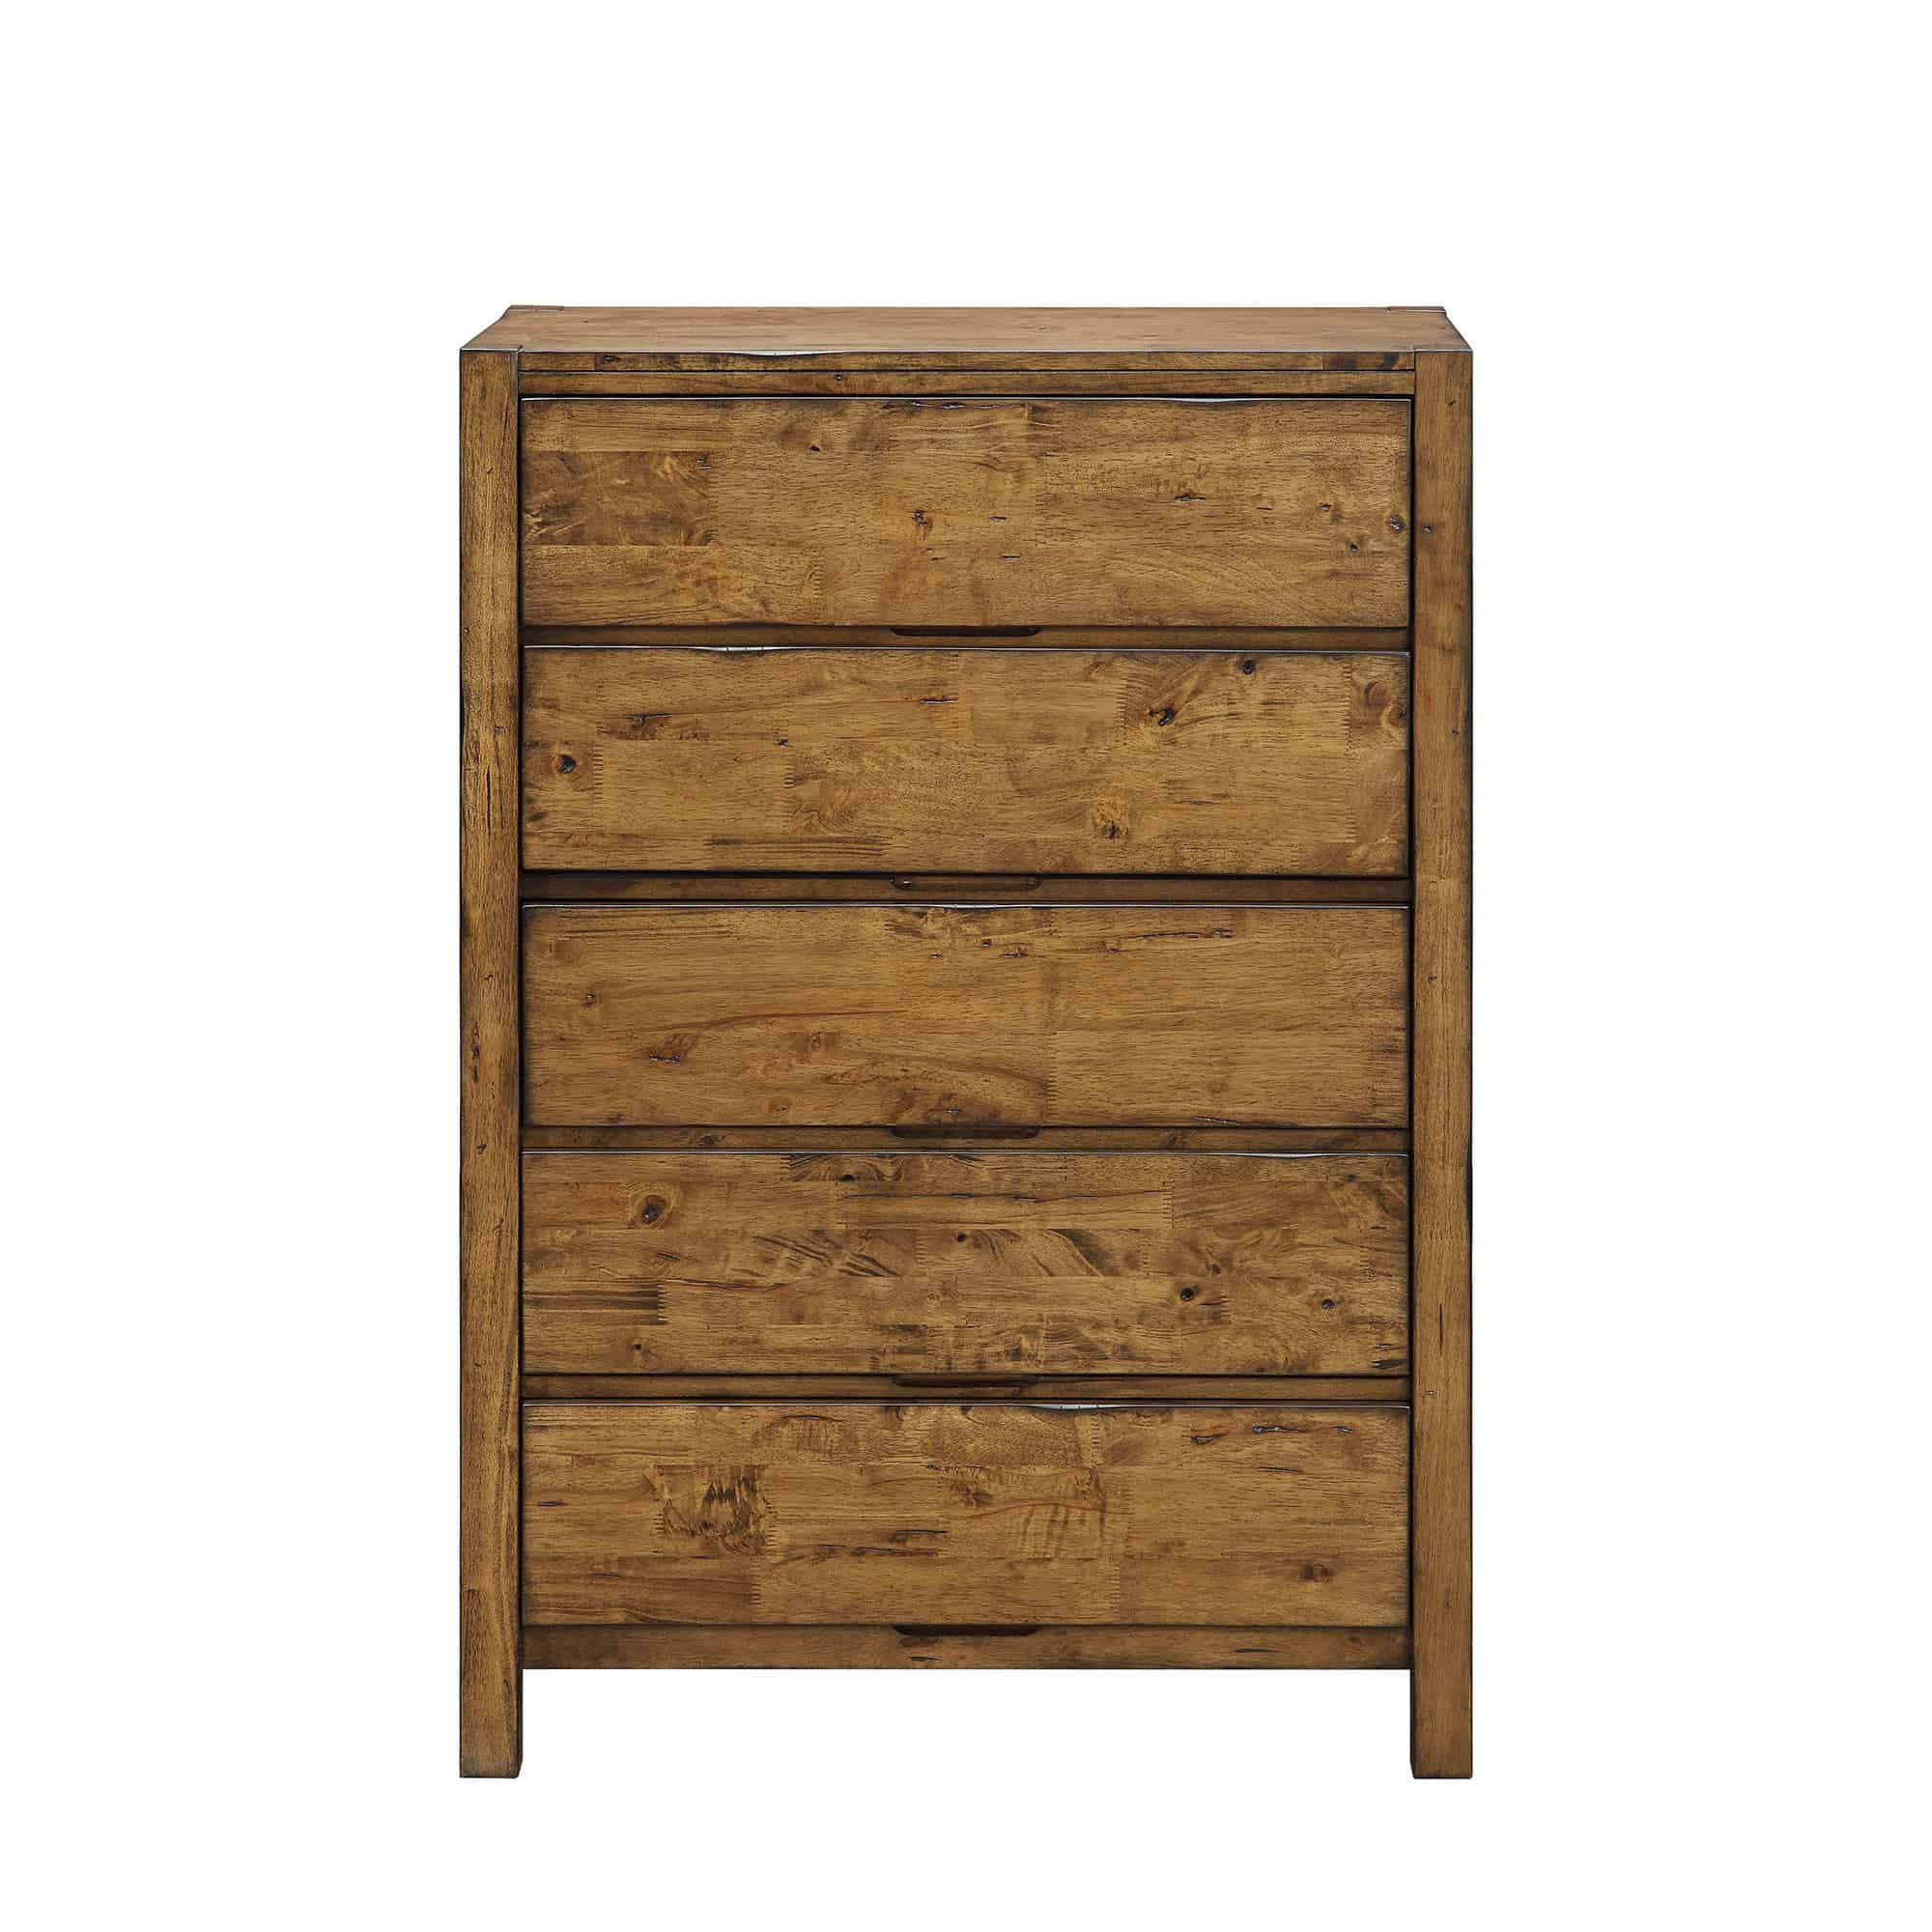 A wooden chest of drawers without drawer pulls for the industrial style bedroom.